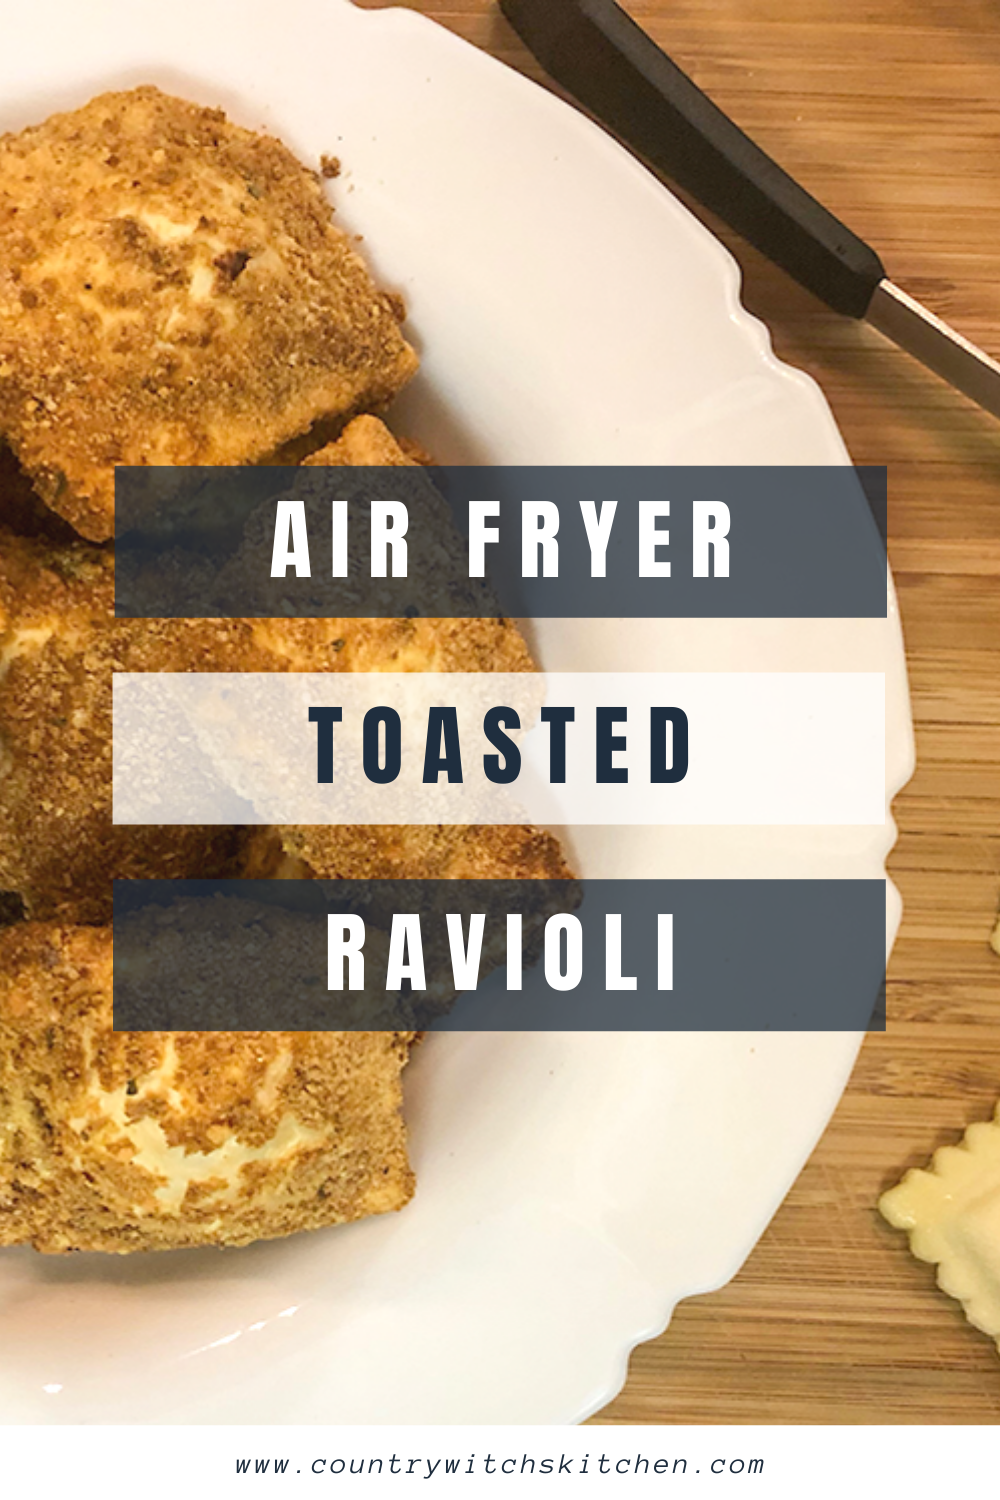 This quick and easy lunch recipe for air fryer toasted ravioli is done in minutes and makes the perfect lunch box addition or warm lunch at home! #airfryerrecipe #toastedravioli #airfryerravioli